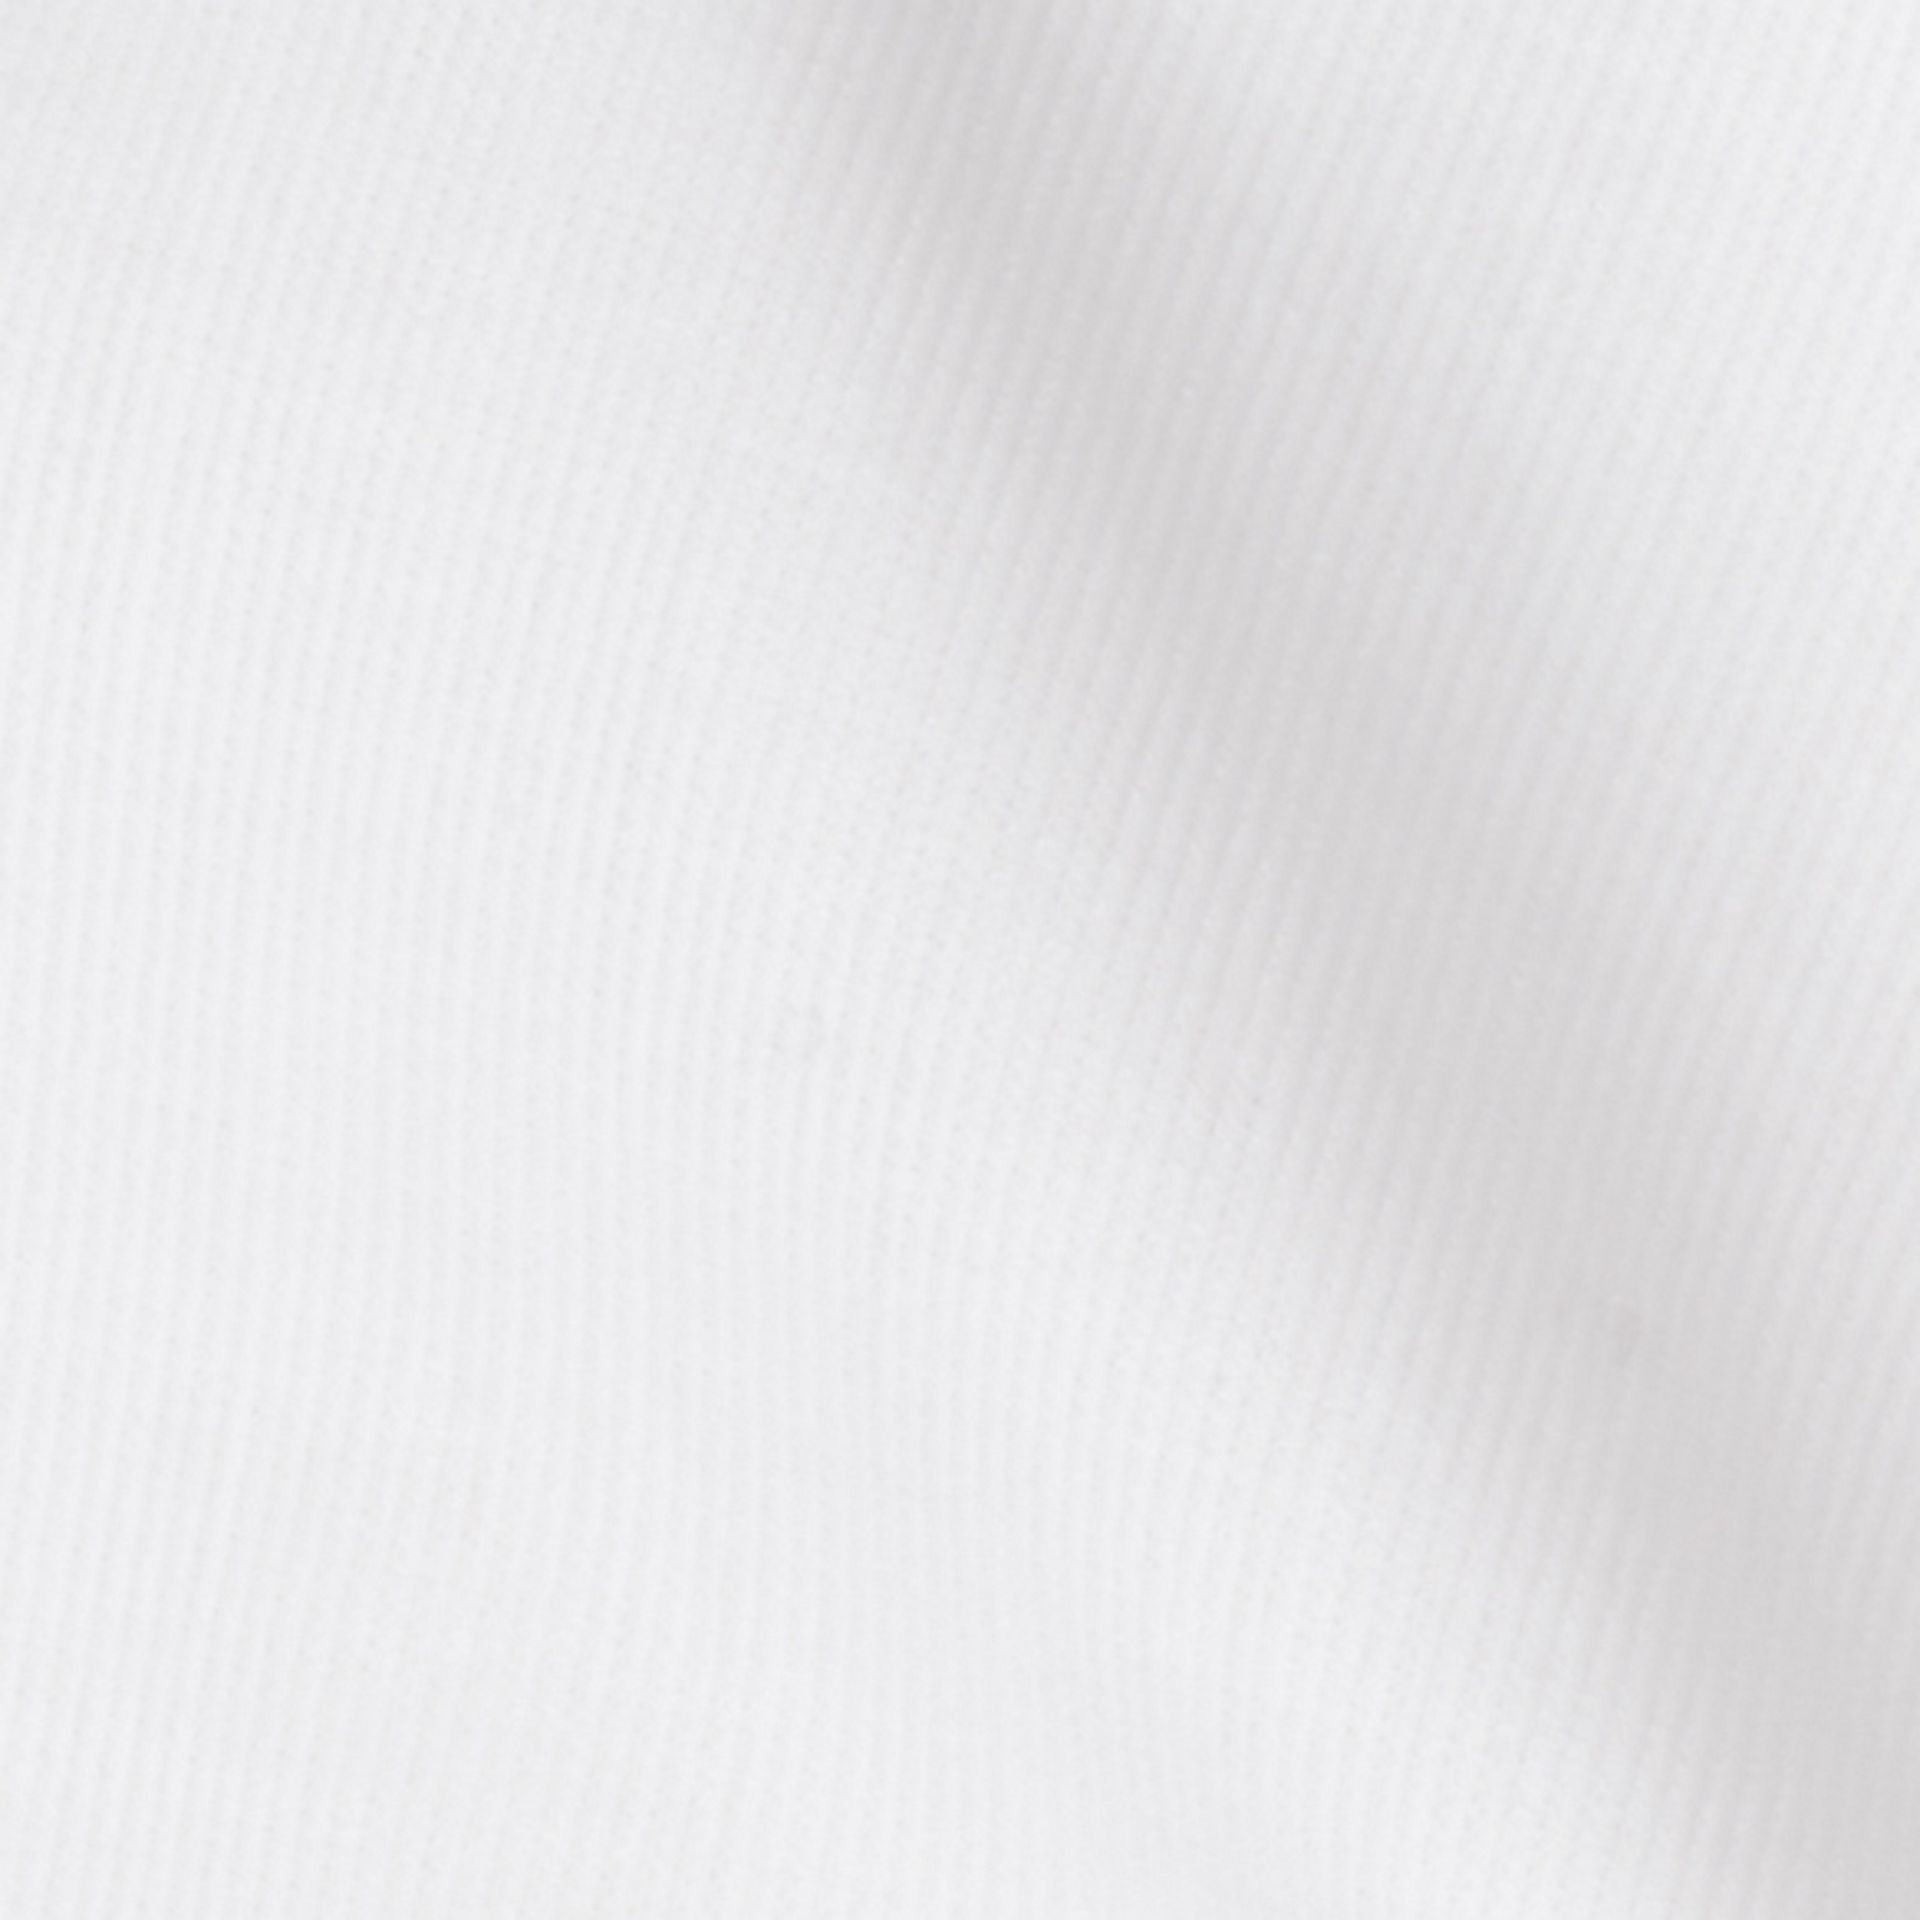 Slim Fit Double-cuff Cotton Dress Shirt in White - Men | Burberry - gallery image 2